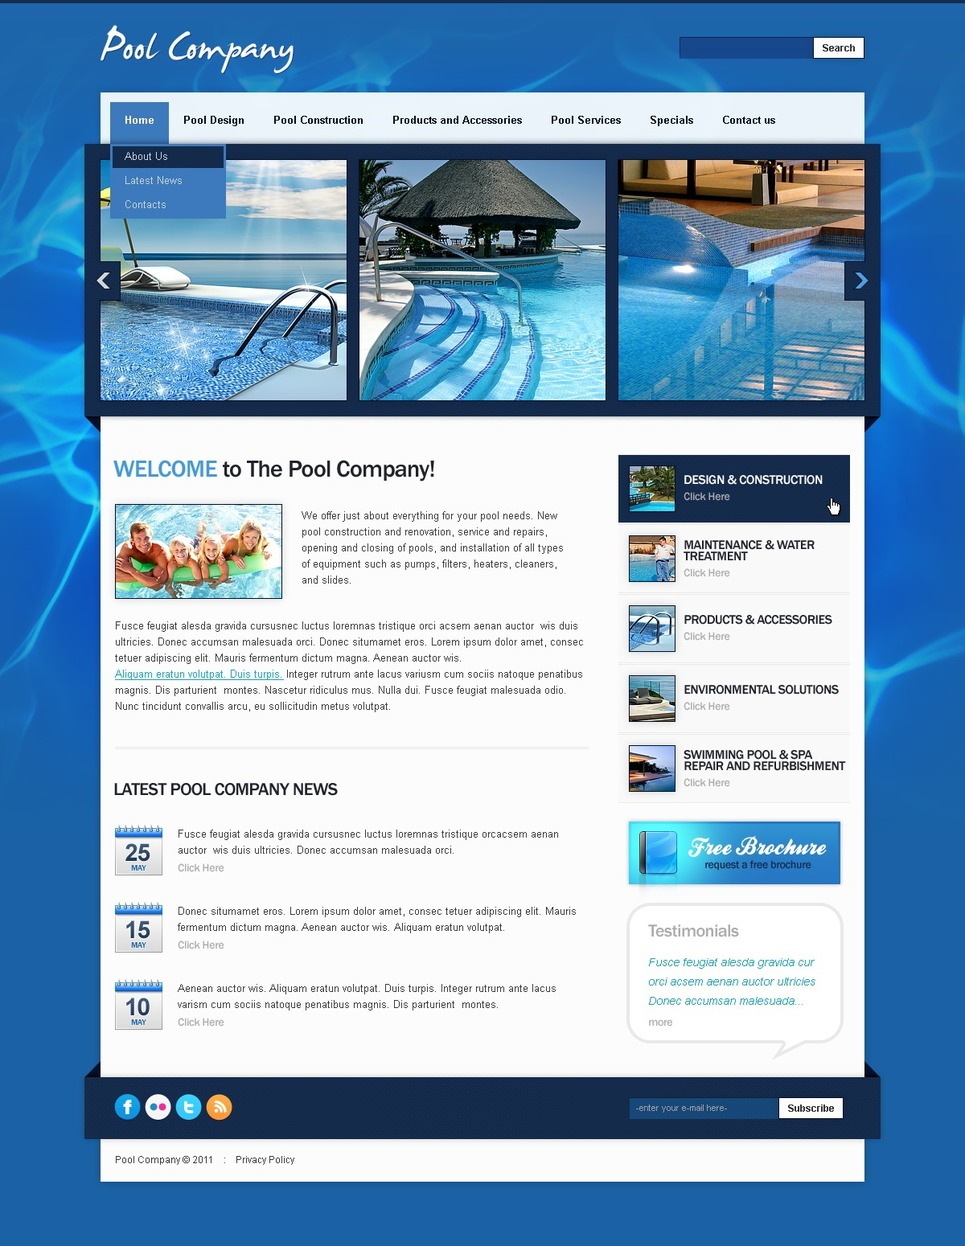 Pool Cleaning website theme's image